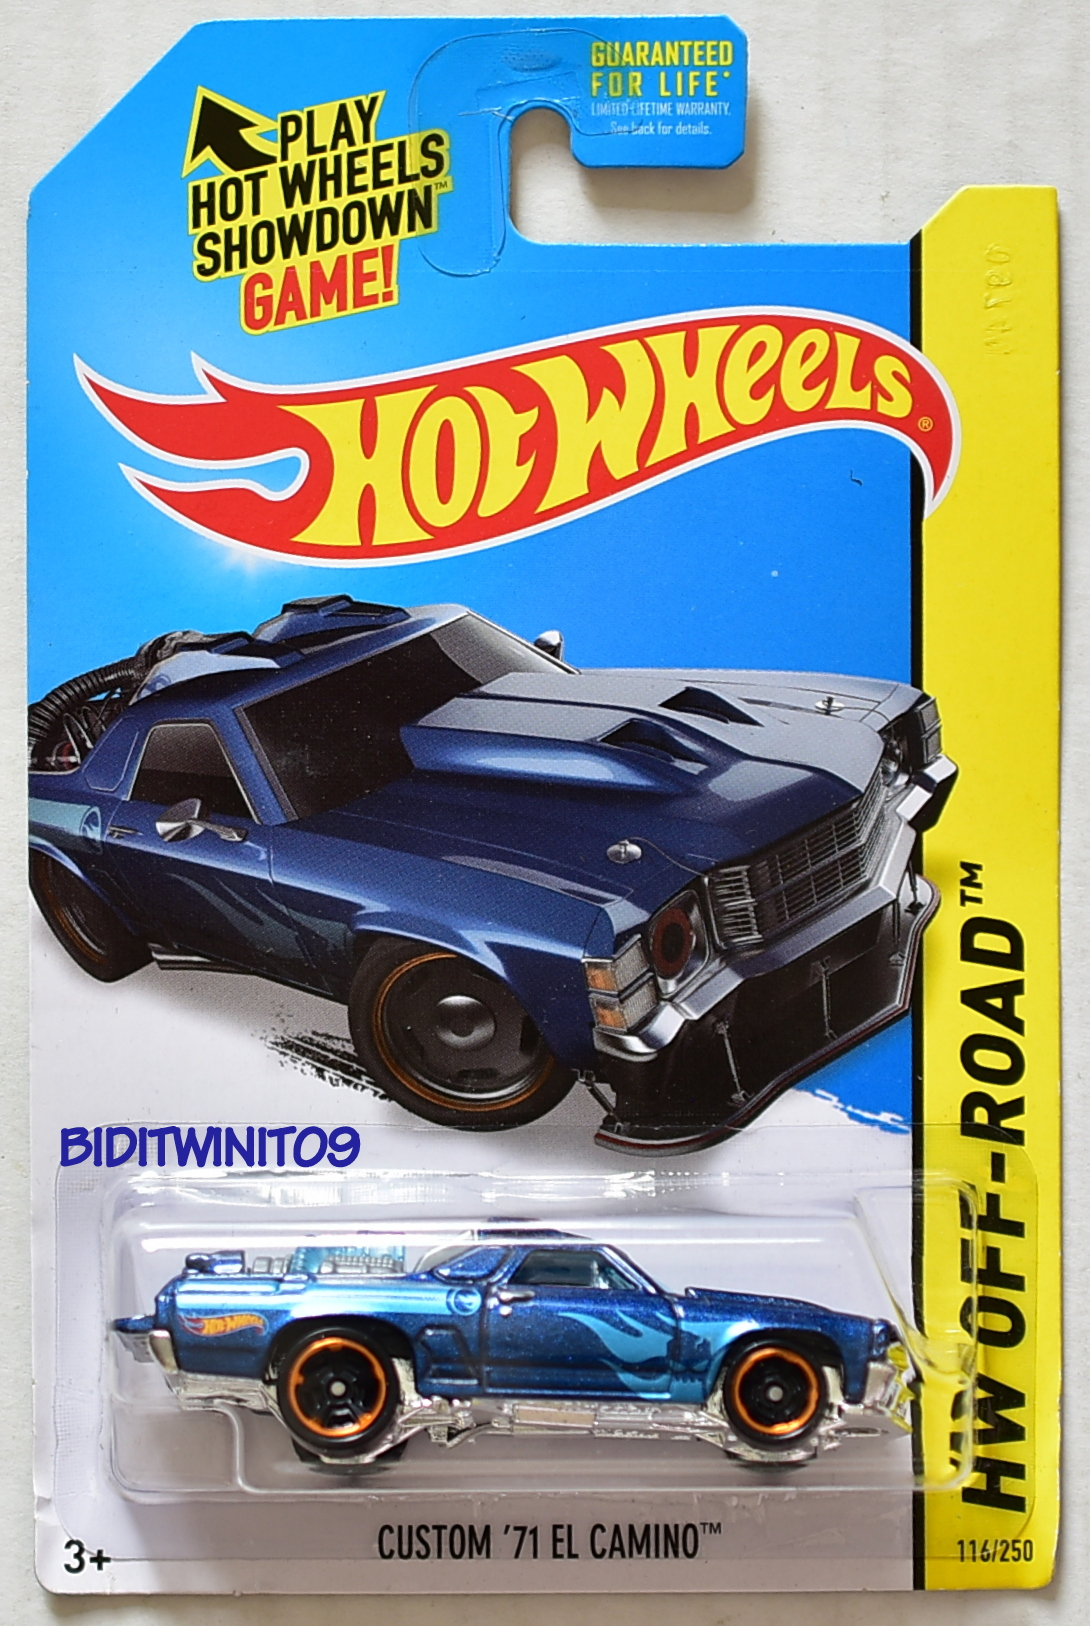 HOT WHEELS 2014 TREASURE HUNT OFF ROAD - HW TEST FACILITY CUSTOM '71 EL CAMINO